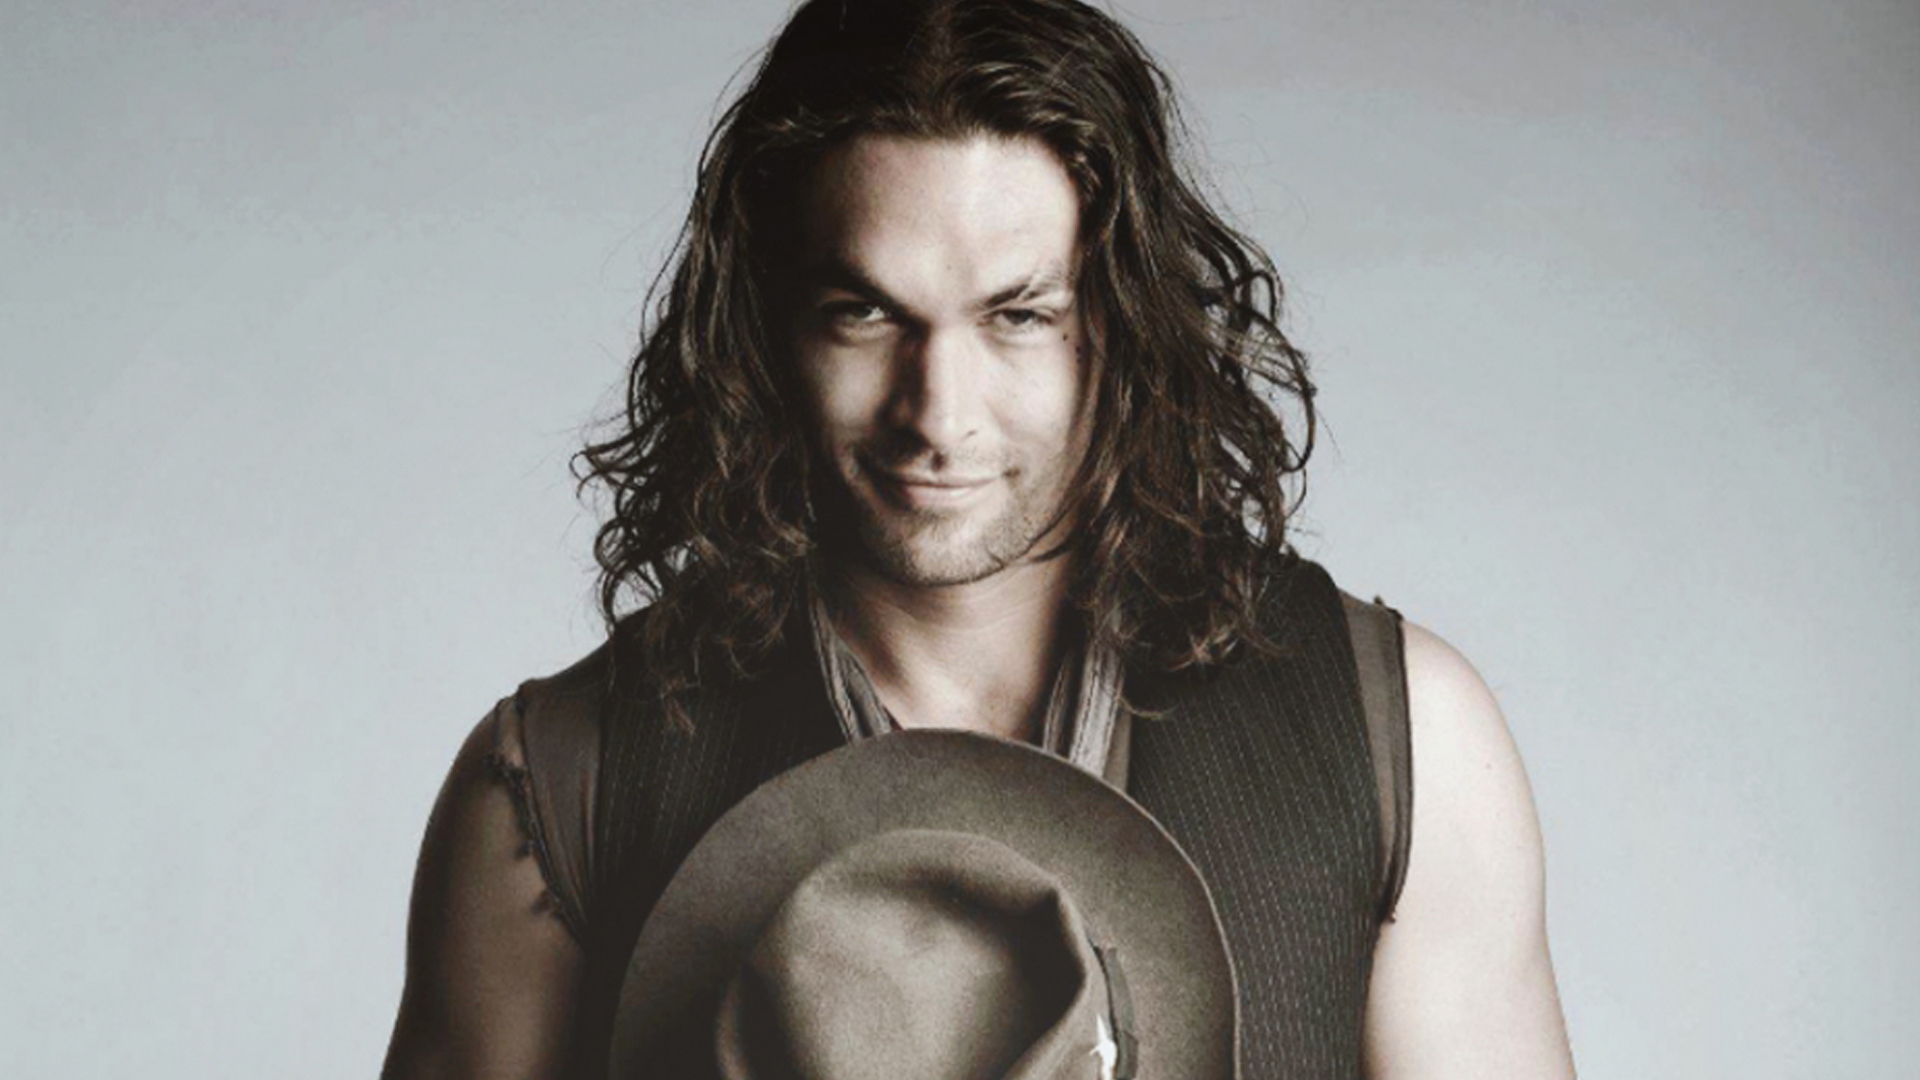 Jason Momoa HD Wallpap... Gerard Butler